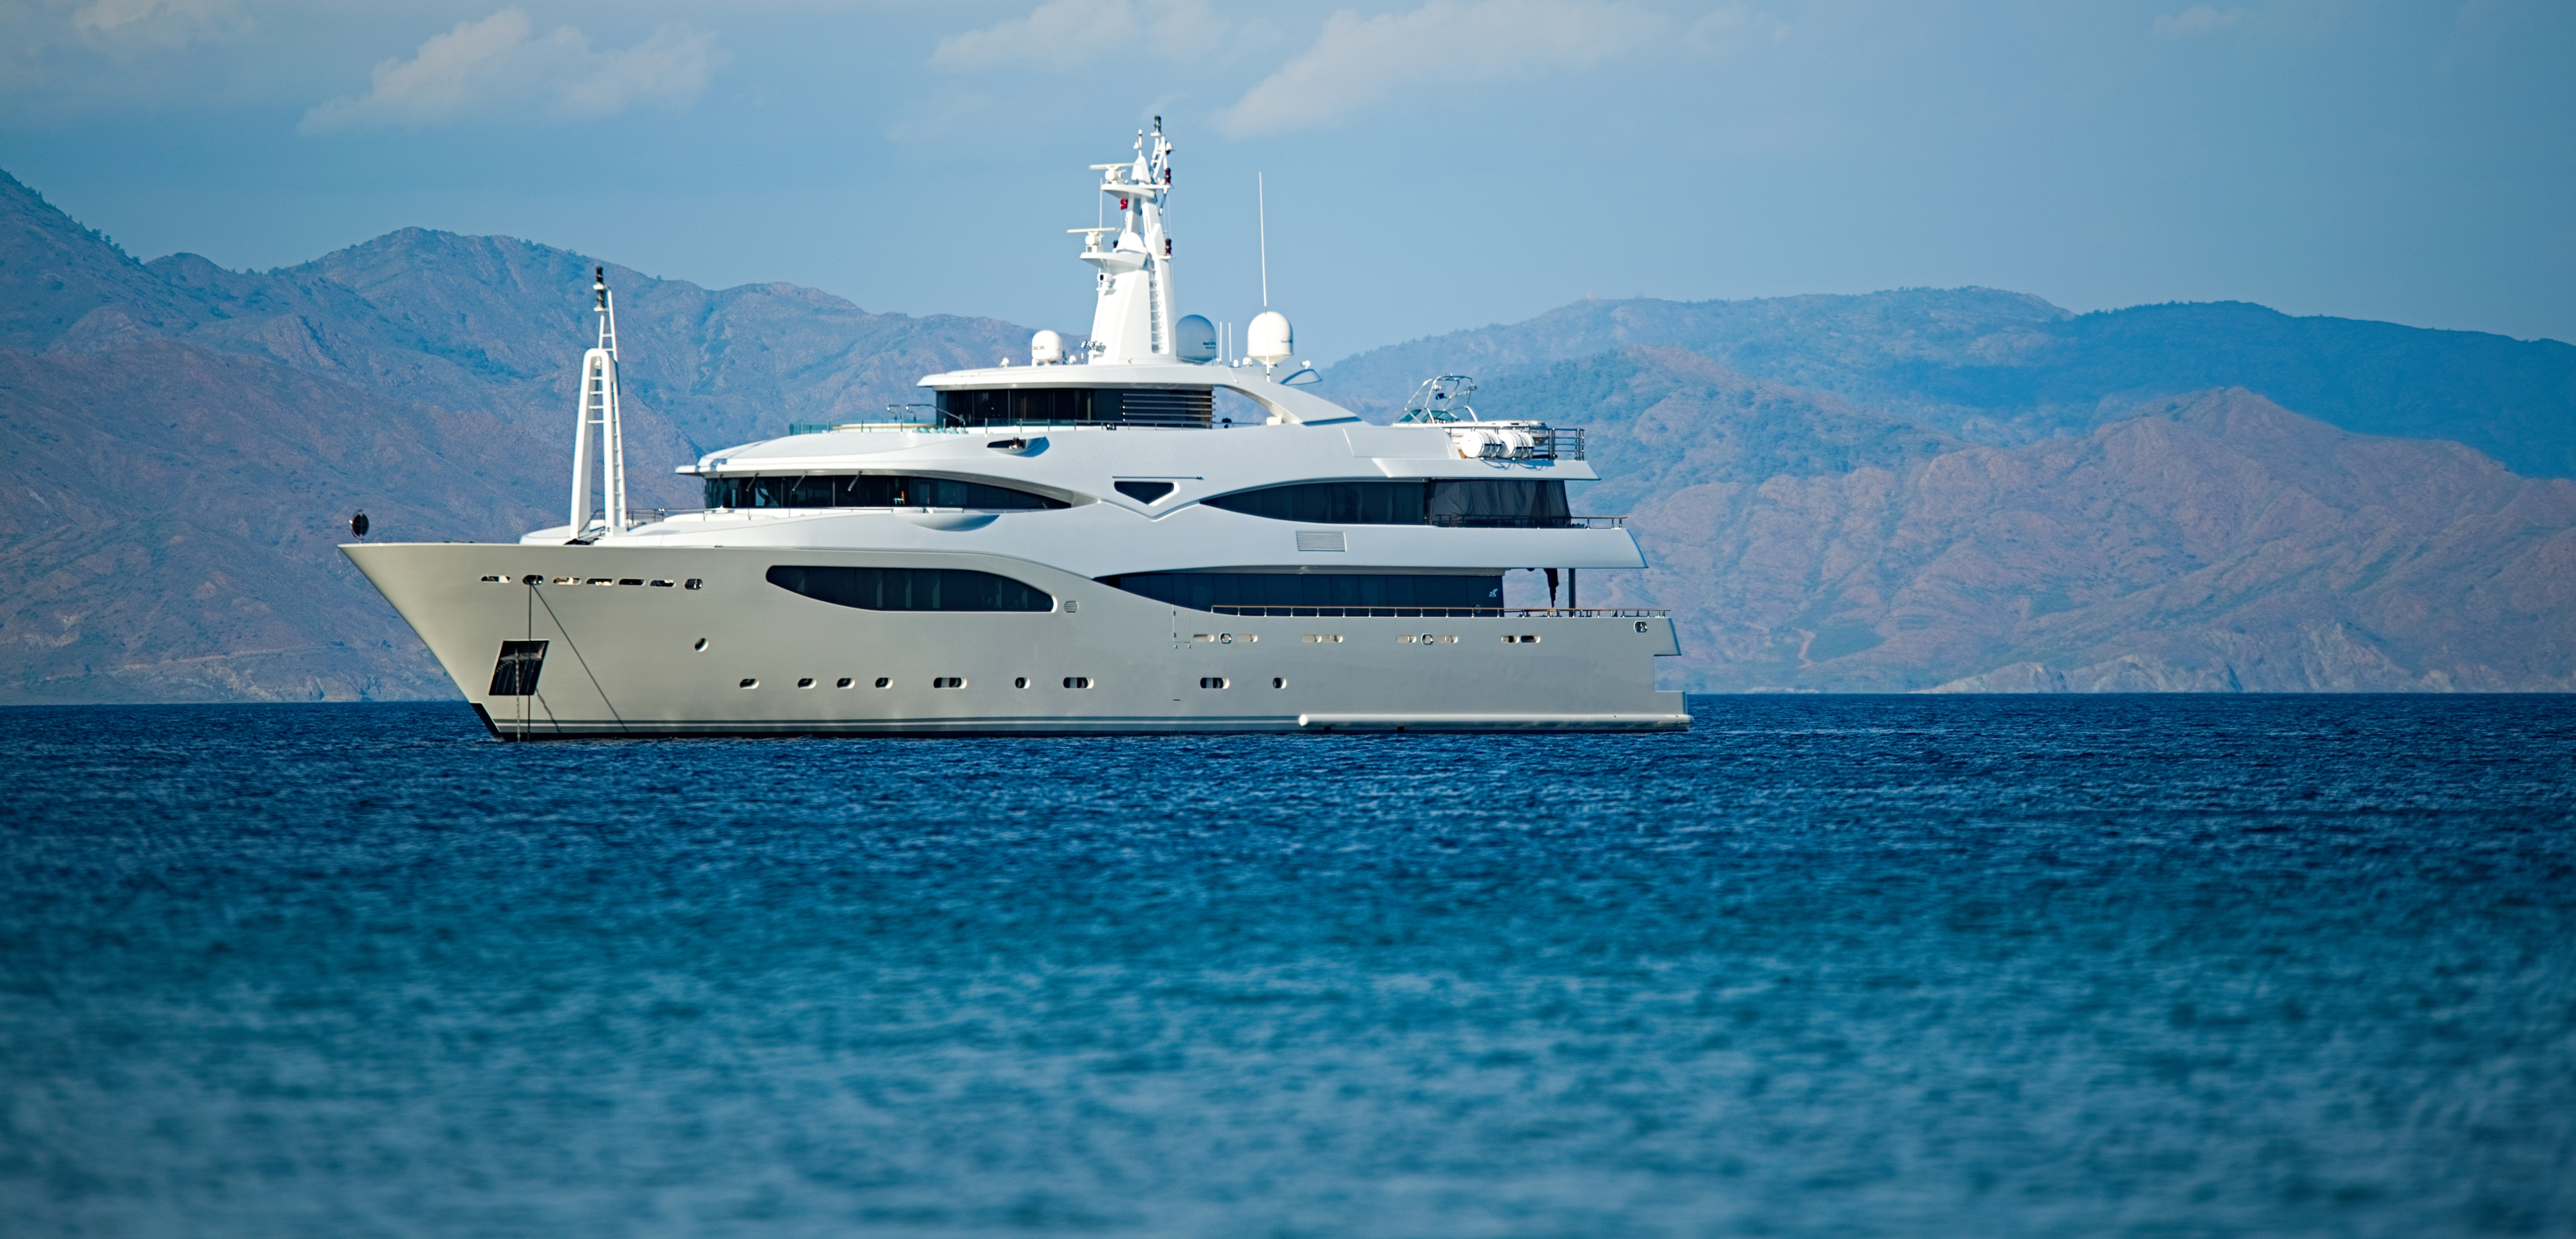 Superyacht 75.jpg